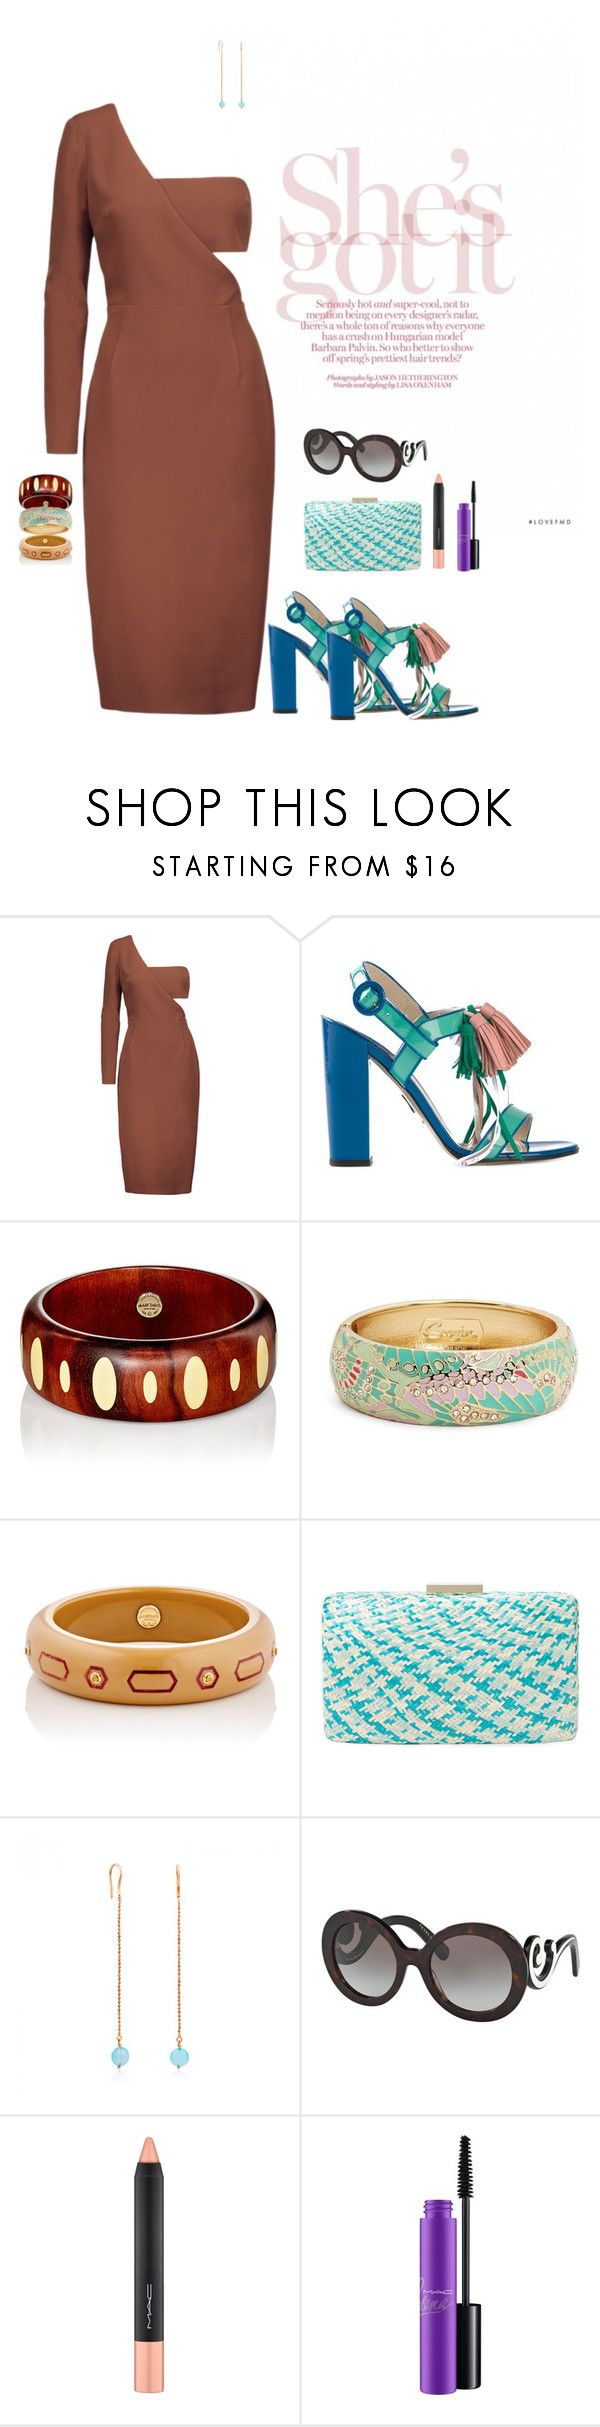 """Ribera."" by srtagraham ❤ liked on Polyvore featuring Cushnie Et Ochs, Paul Andrew, Mark Davis, Sequin, Kayu, TOUS, Prada and MAC Cosmetics"